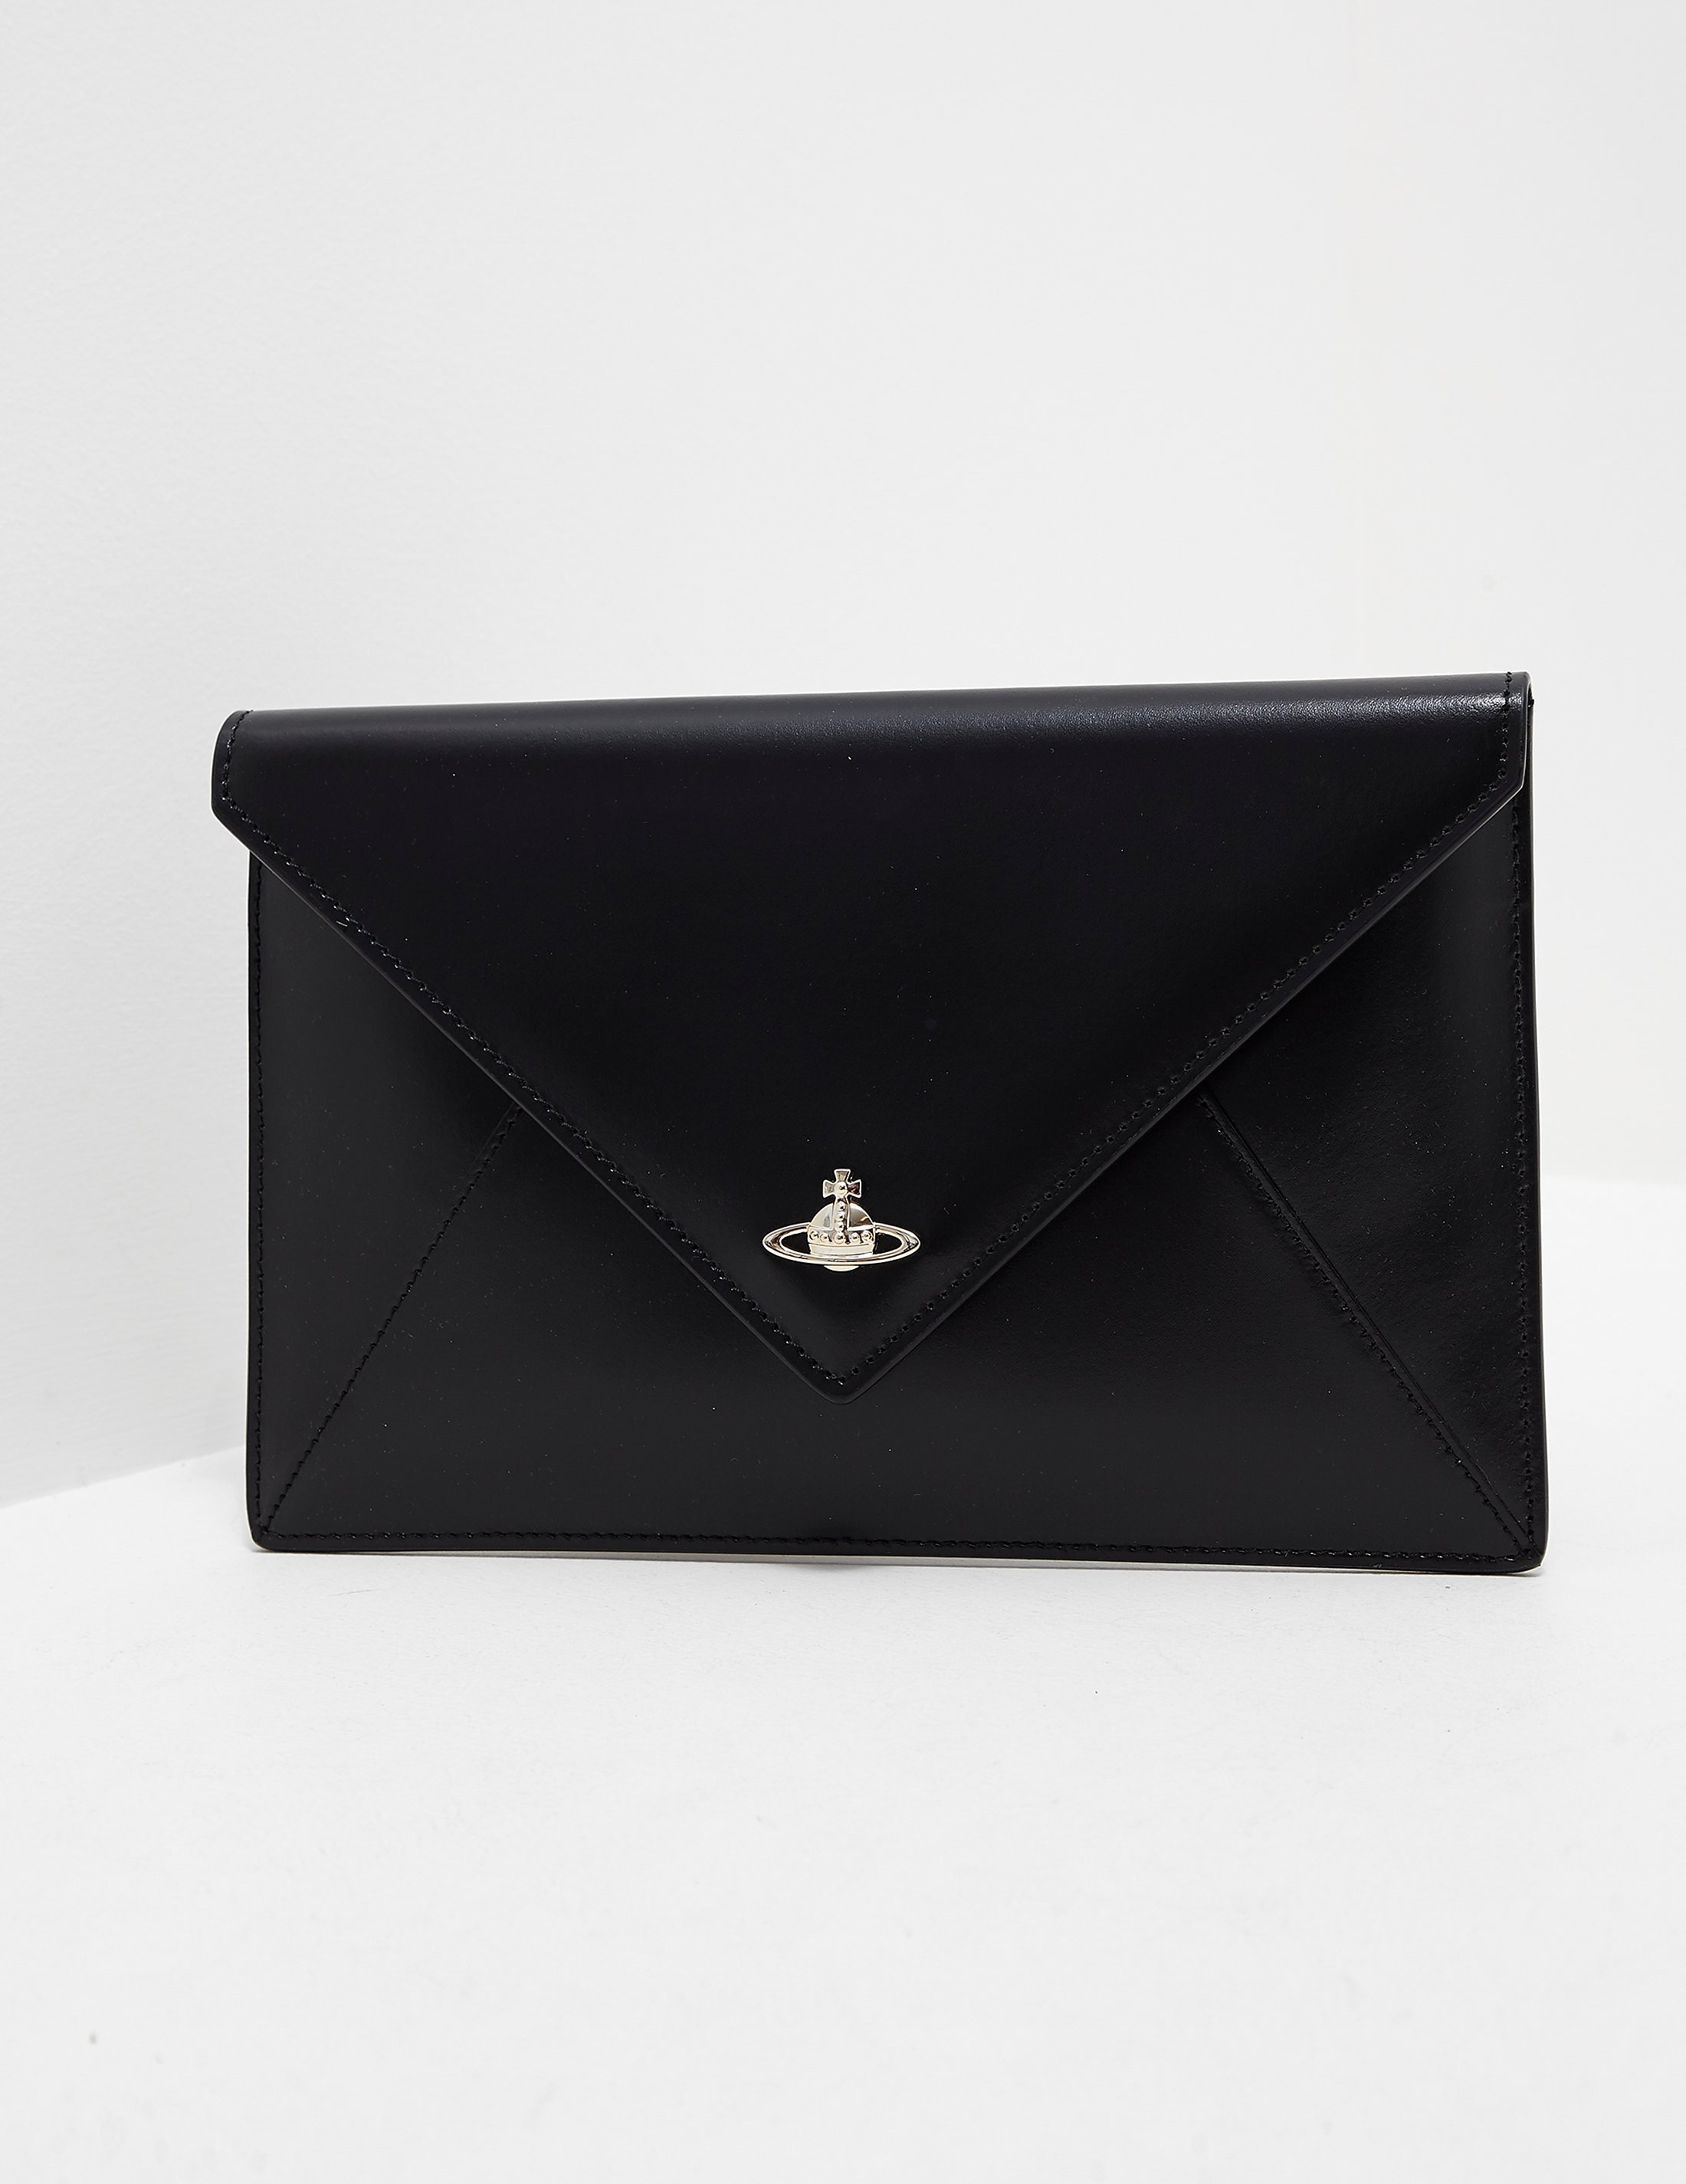 Vivienne Westwood Private Pouch